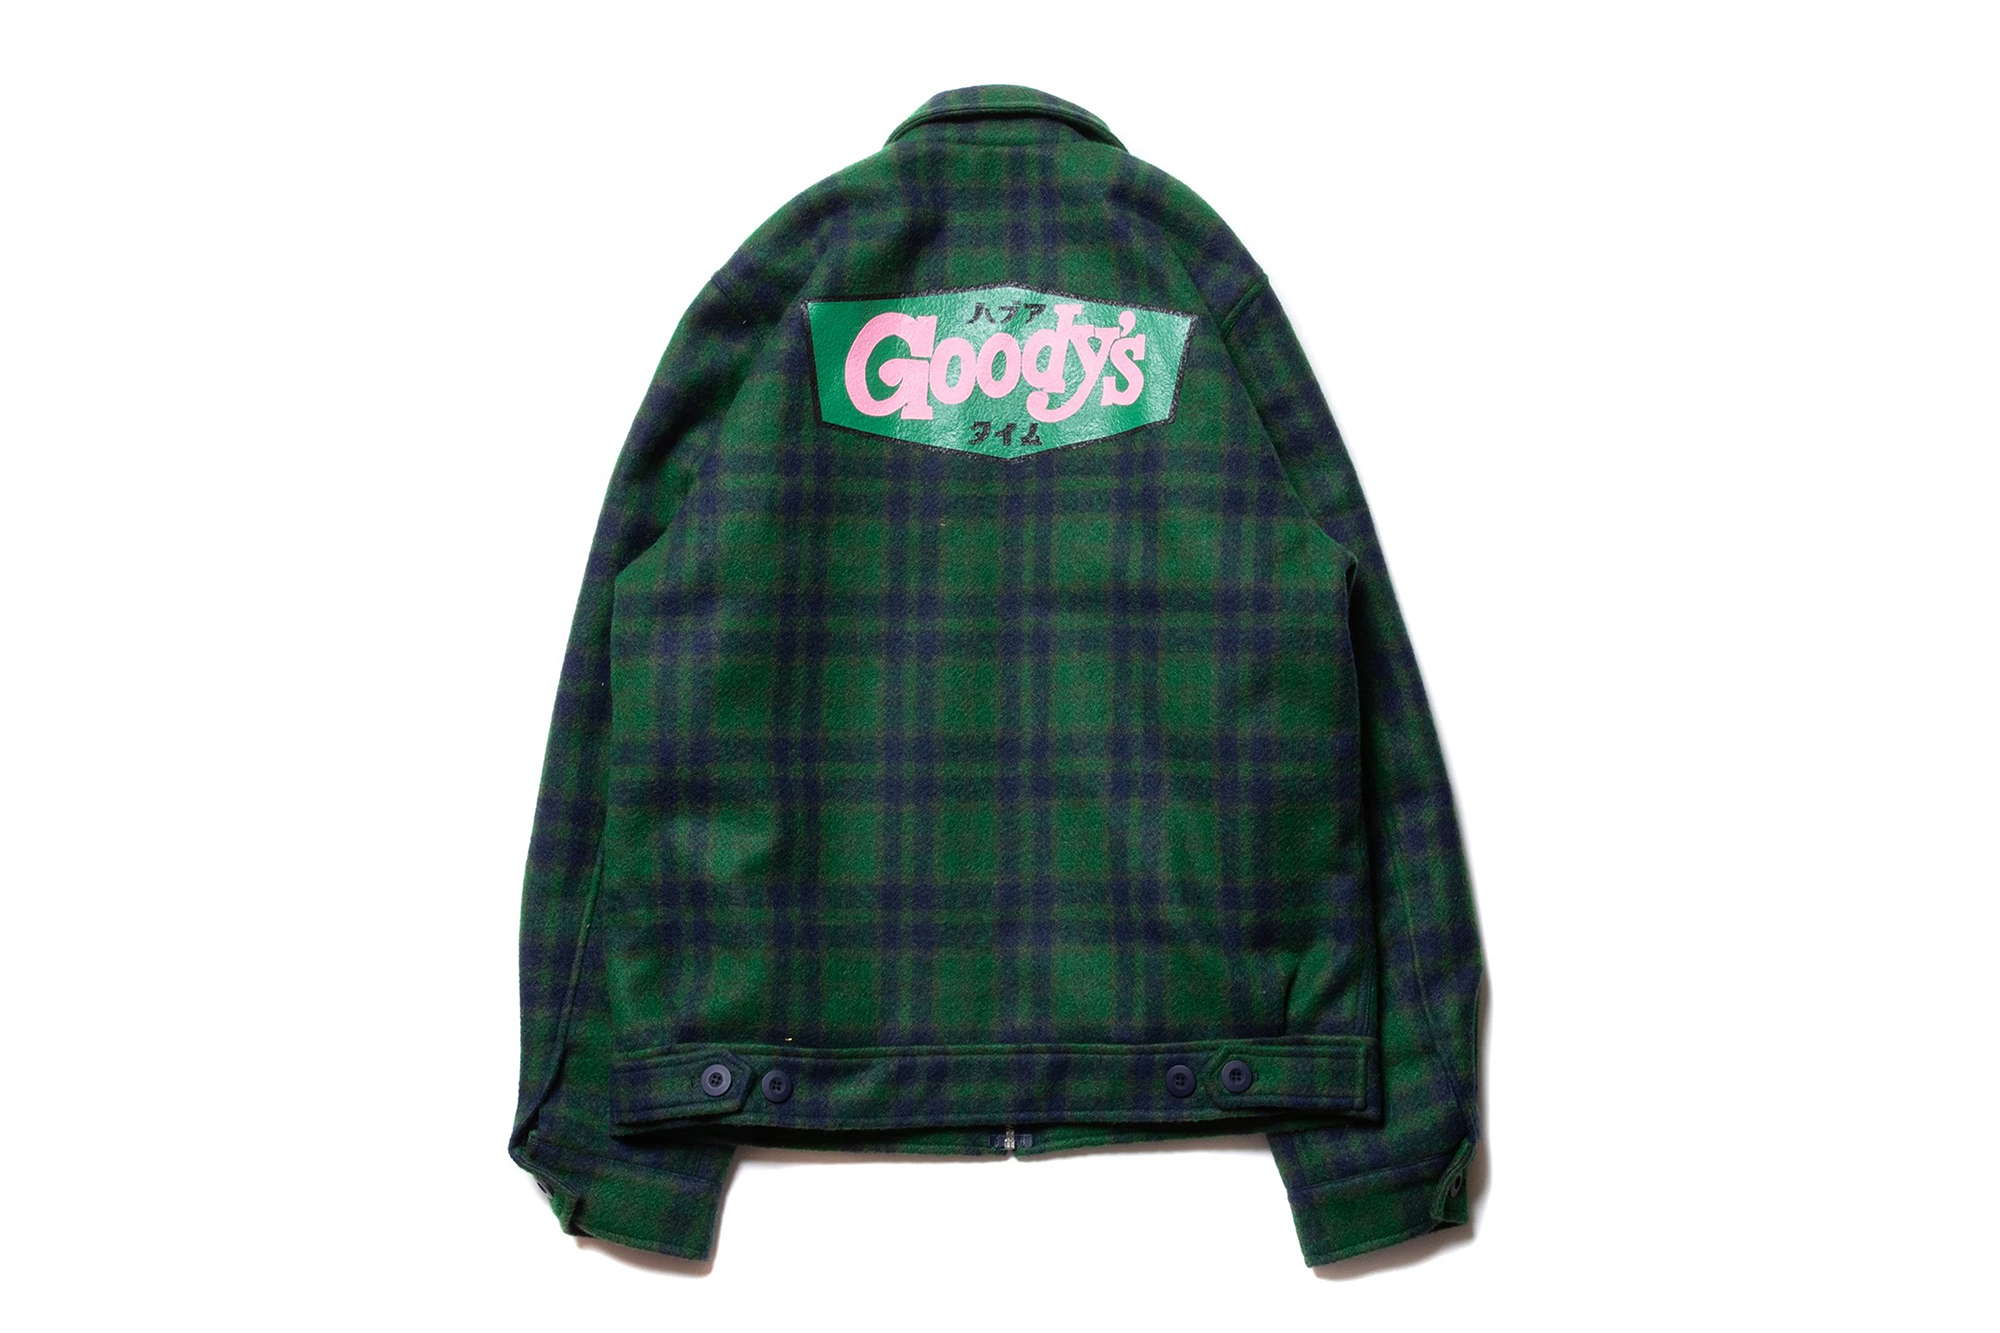 goodys-zip-up-jacketgreen_p1